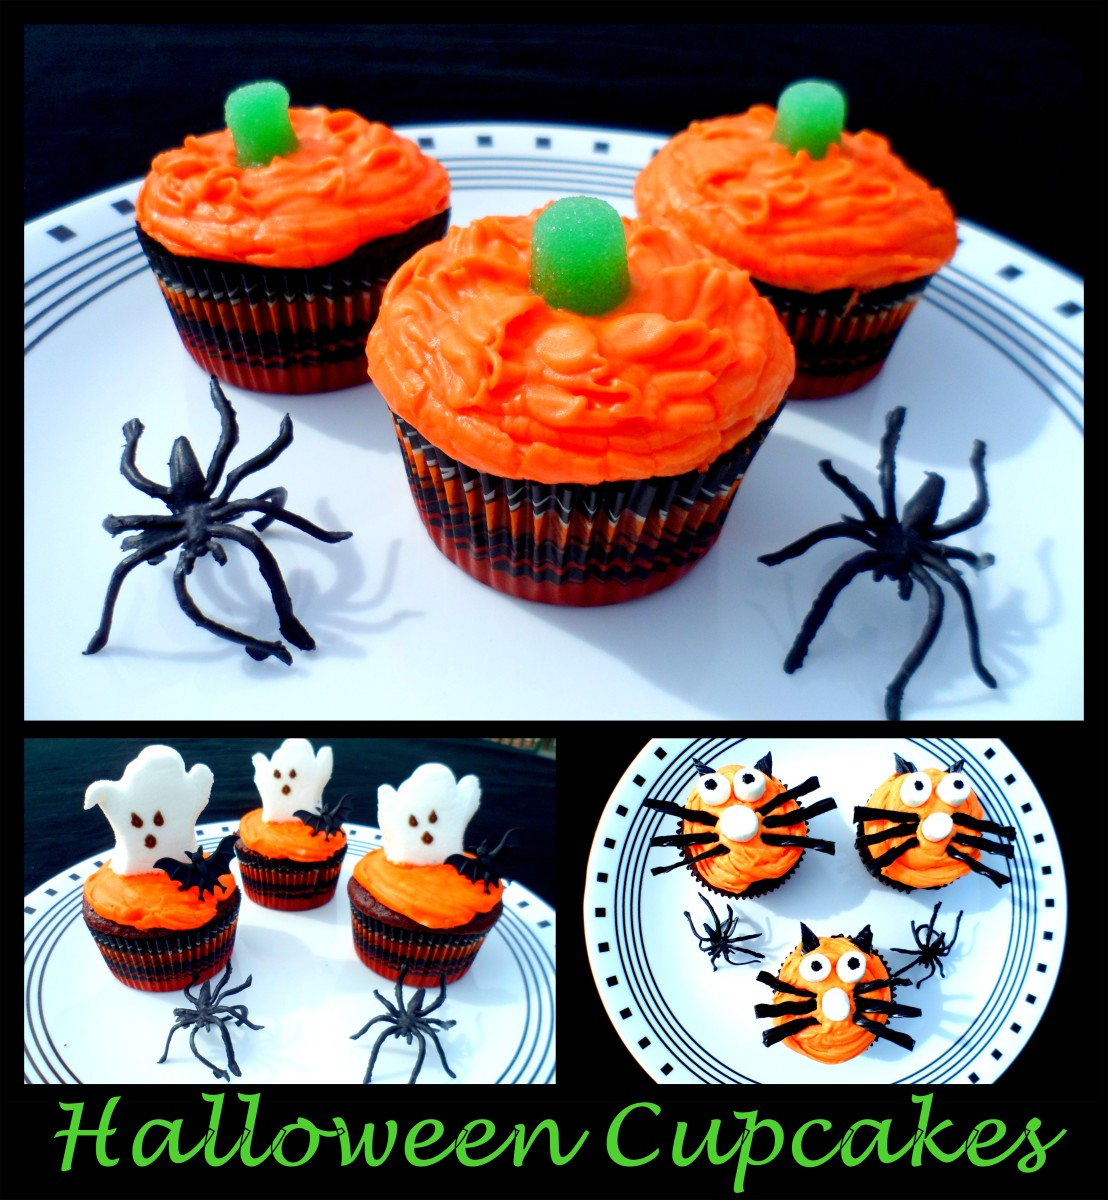 Make a spooky batch of Halloween cupcakes with these fun and easy decorating ideas.